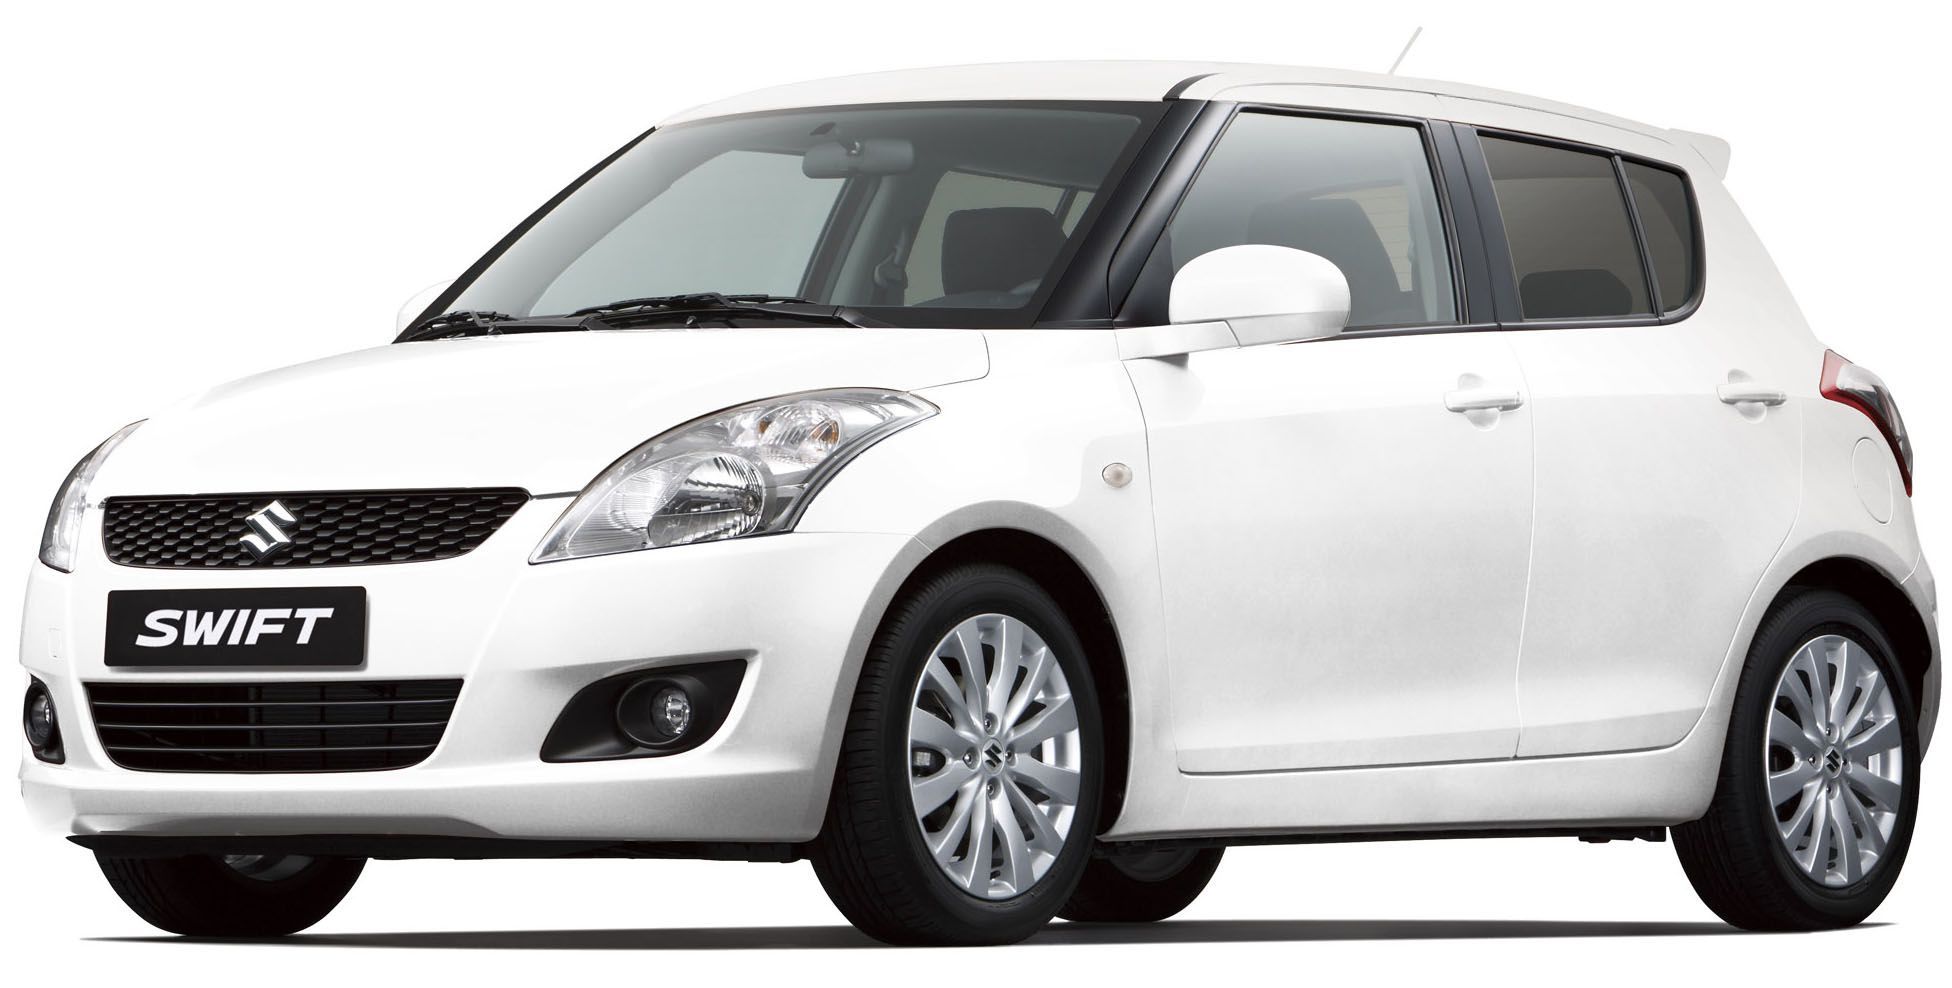 Suzuki Swift (2010 to Onwards) Front Image